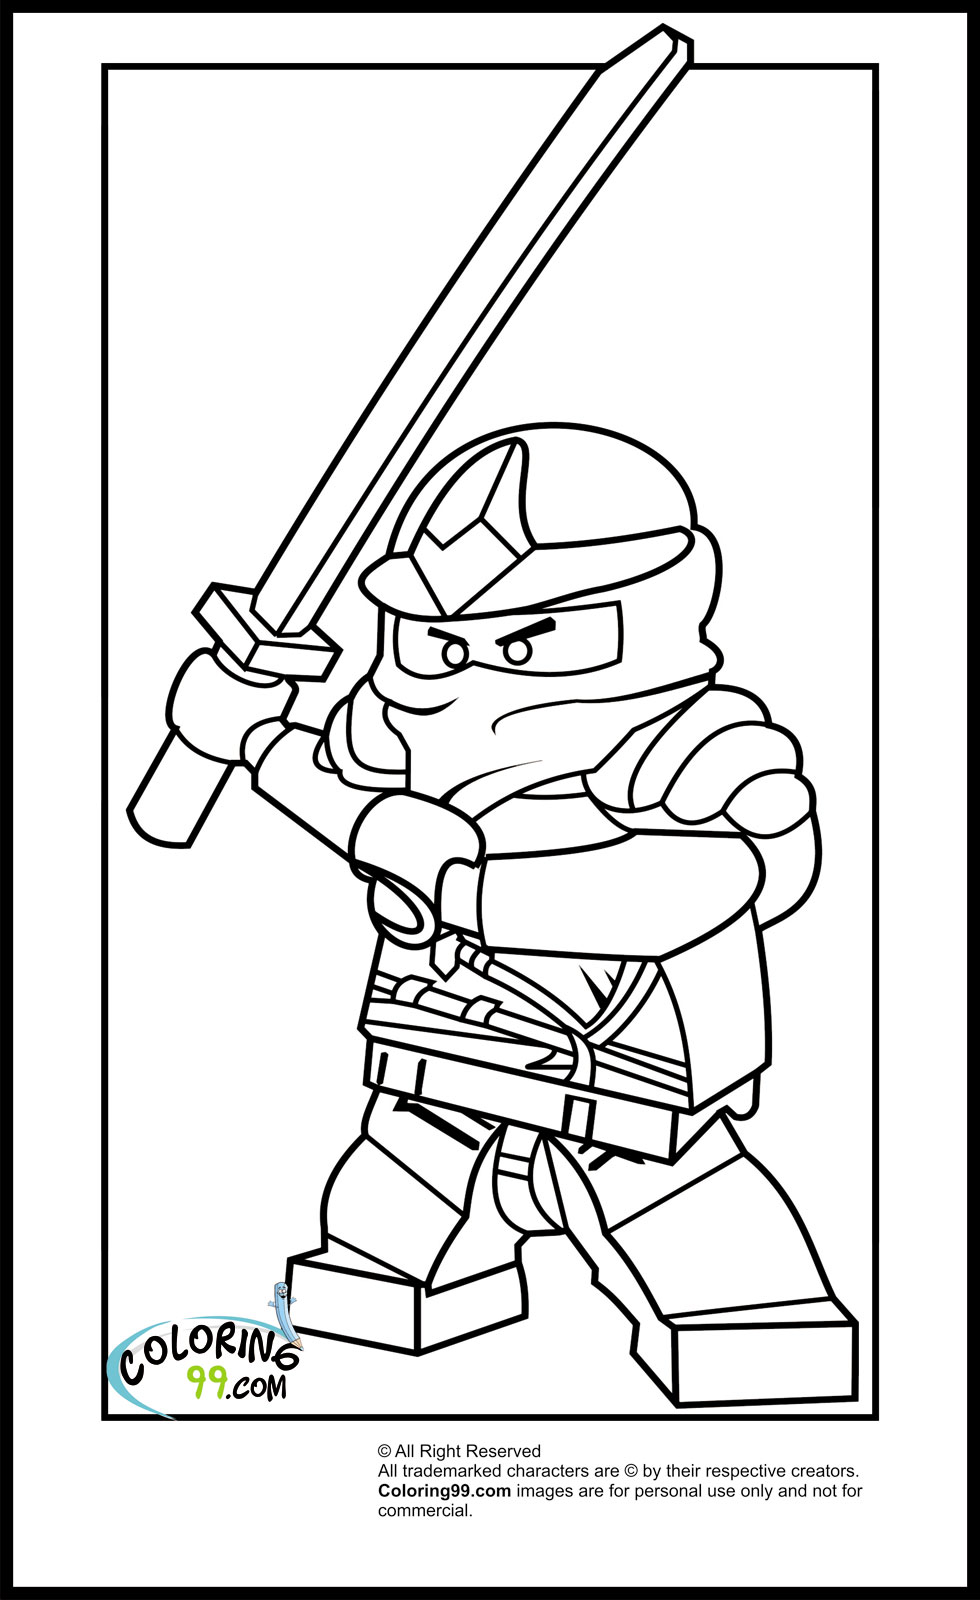 Lego ninjago zane coloring pages minister coloring for Ninja lego coloring pages